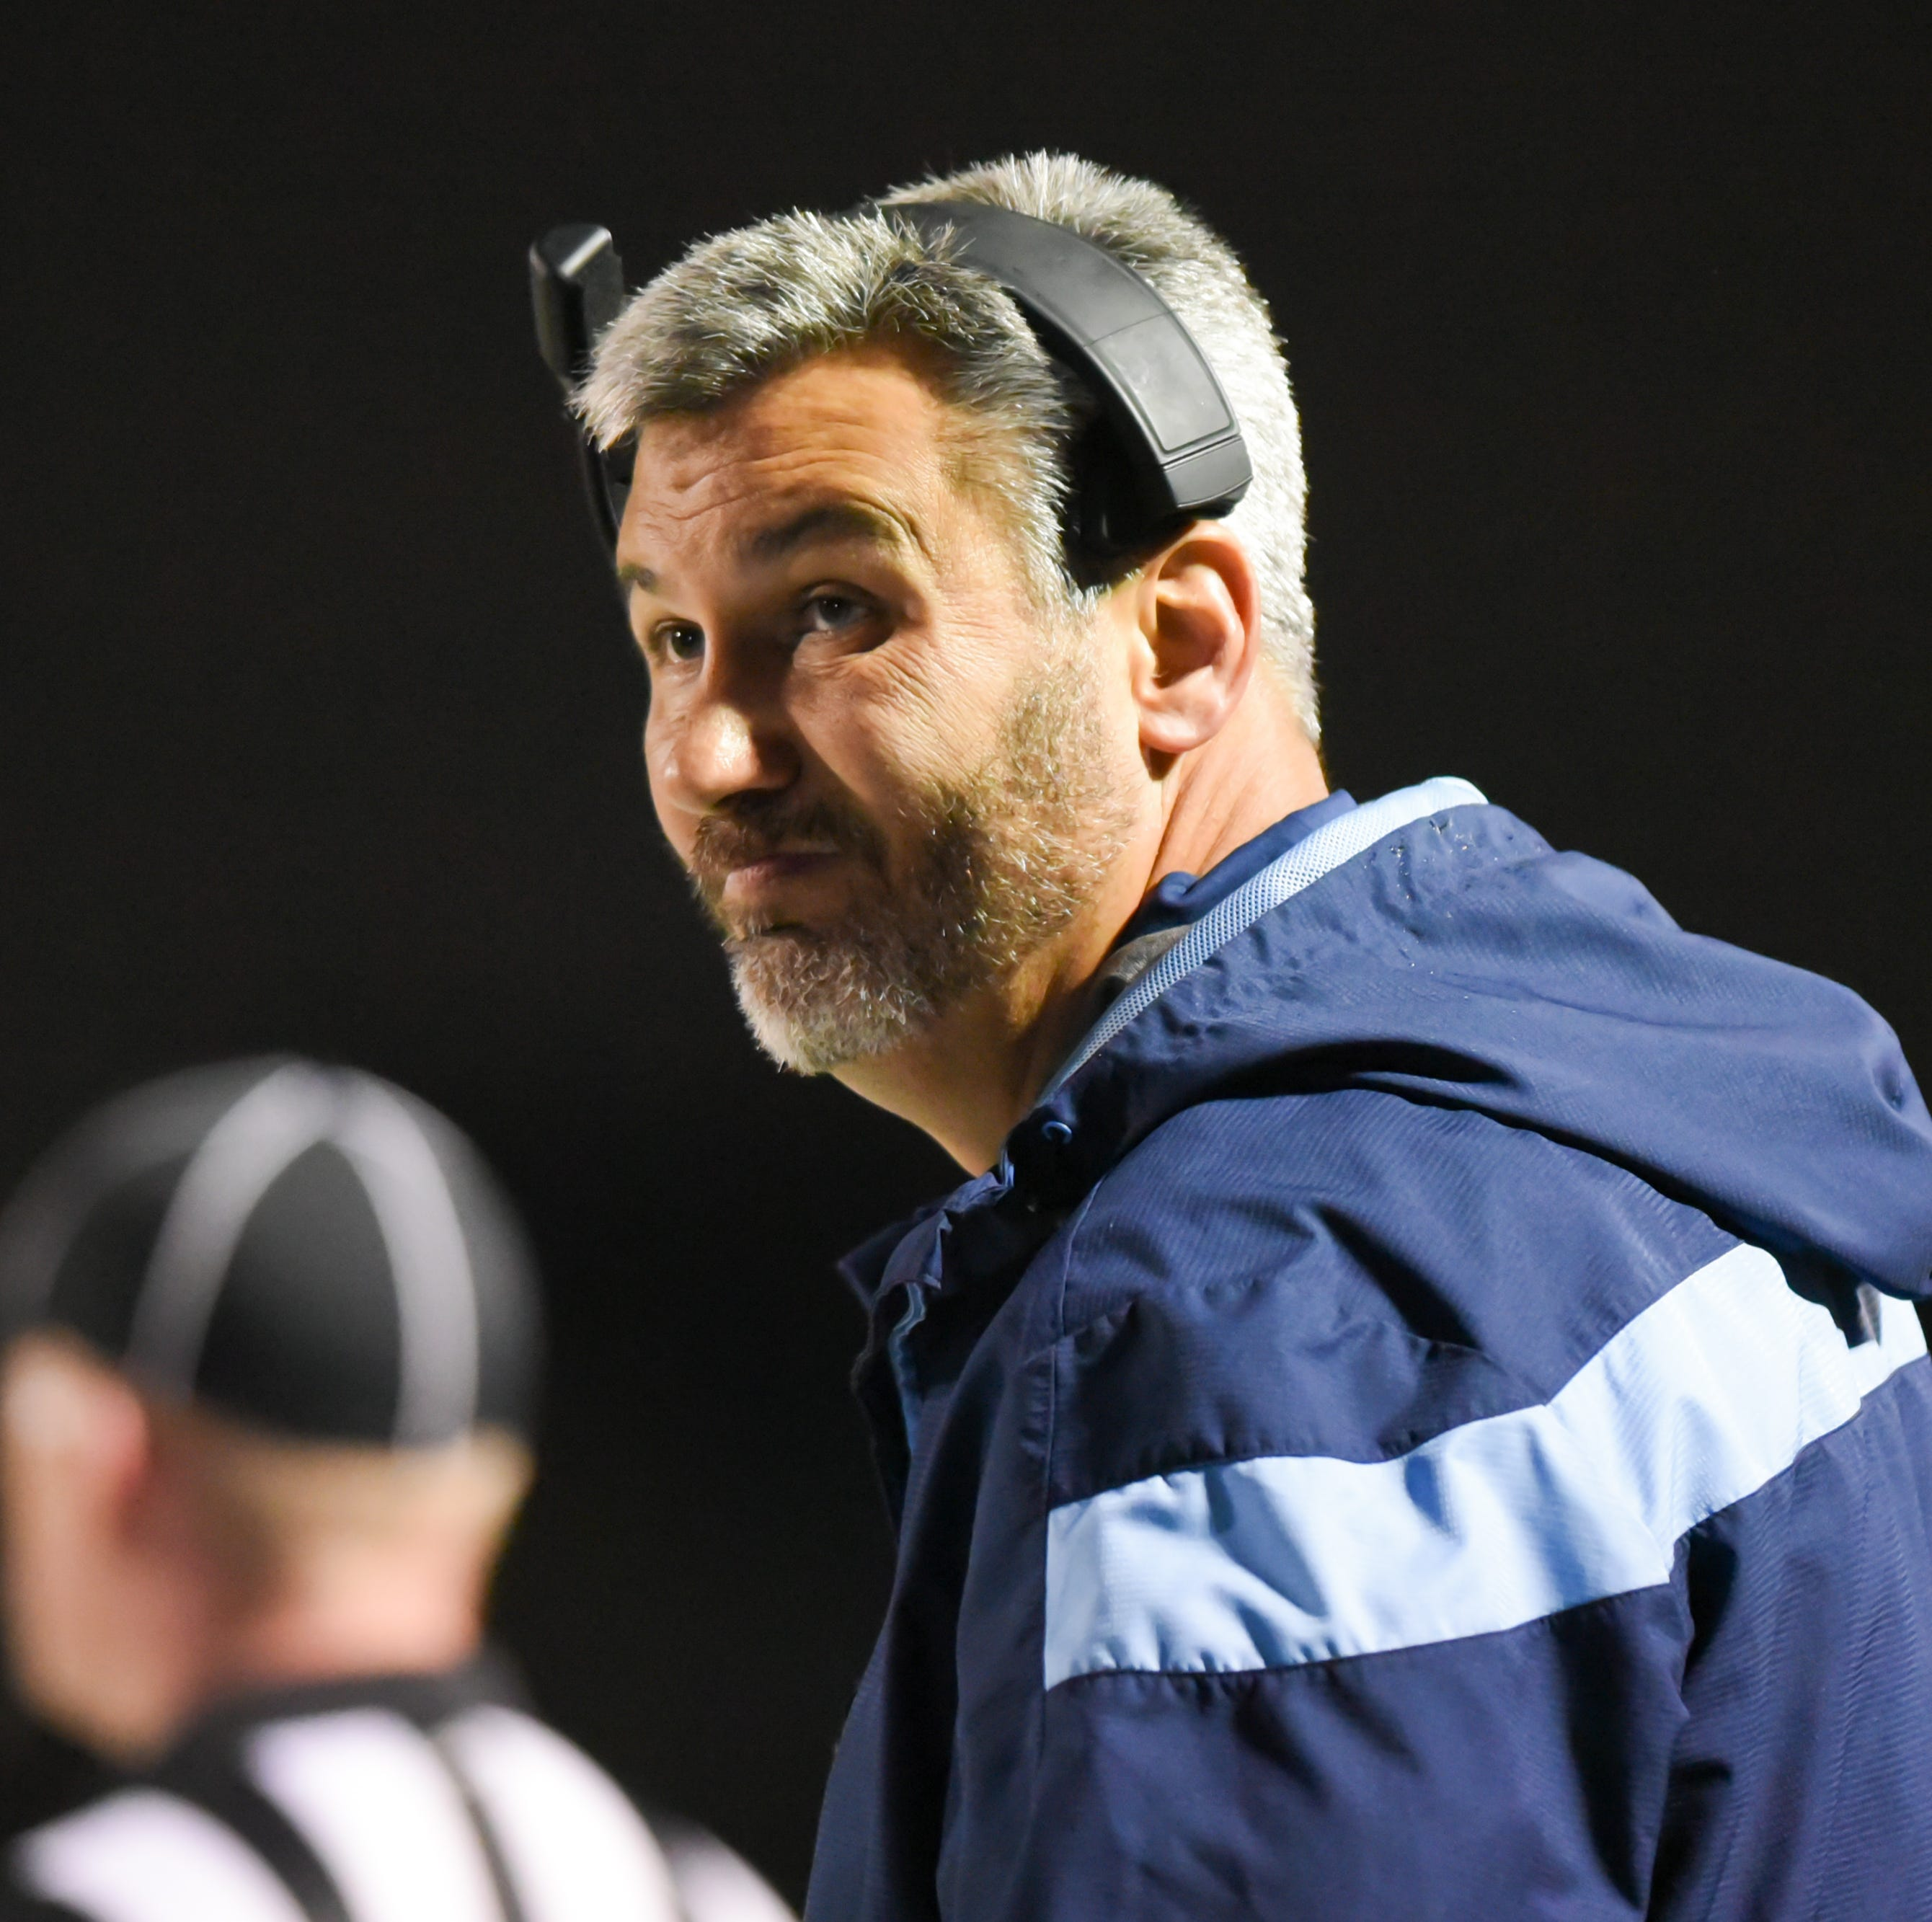 Wes Jones resigns as Hardin Valley football coach